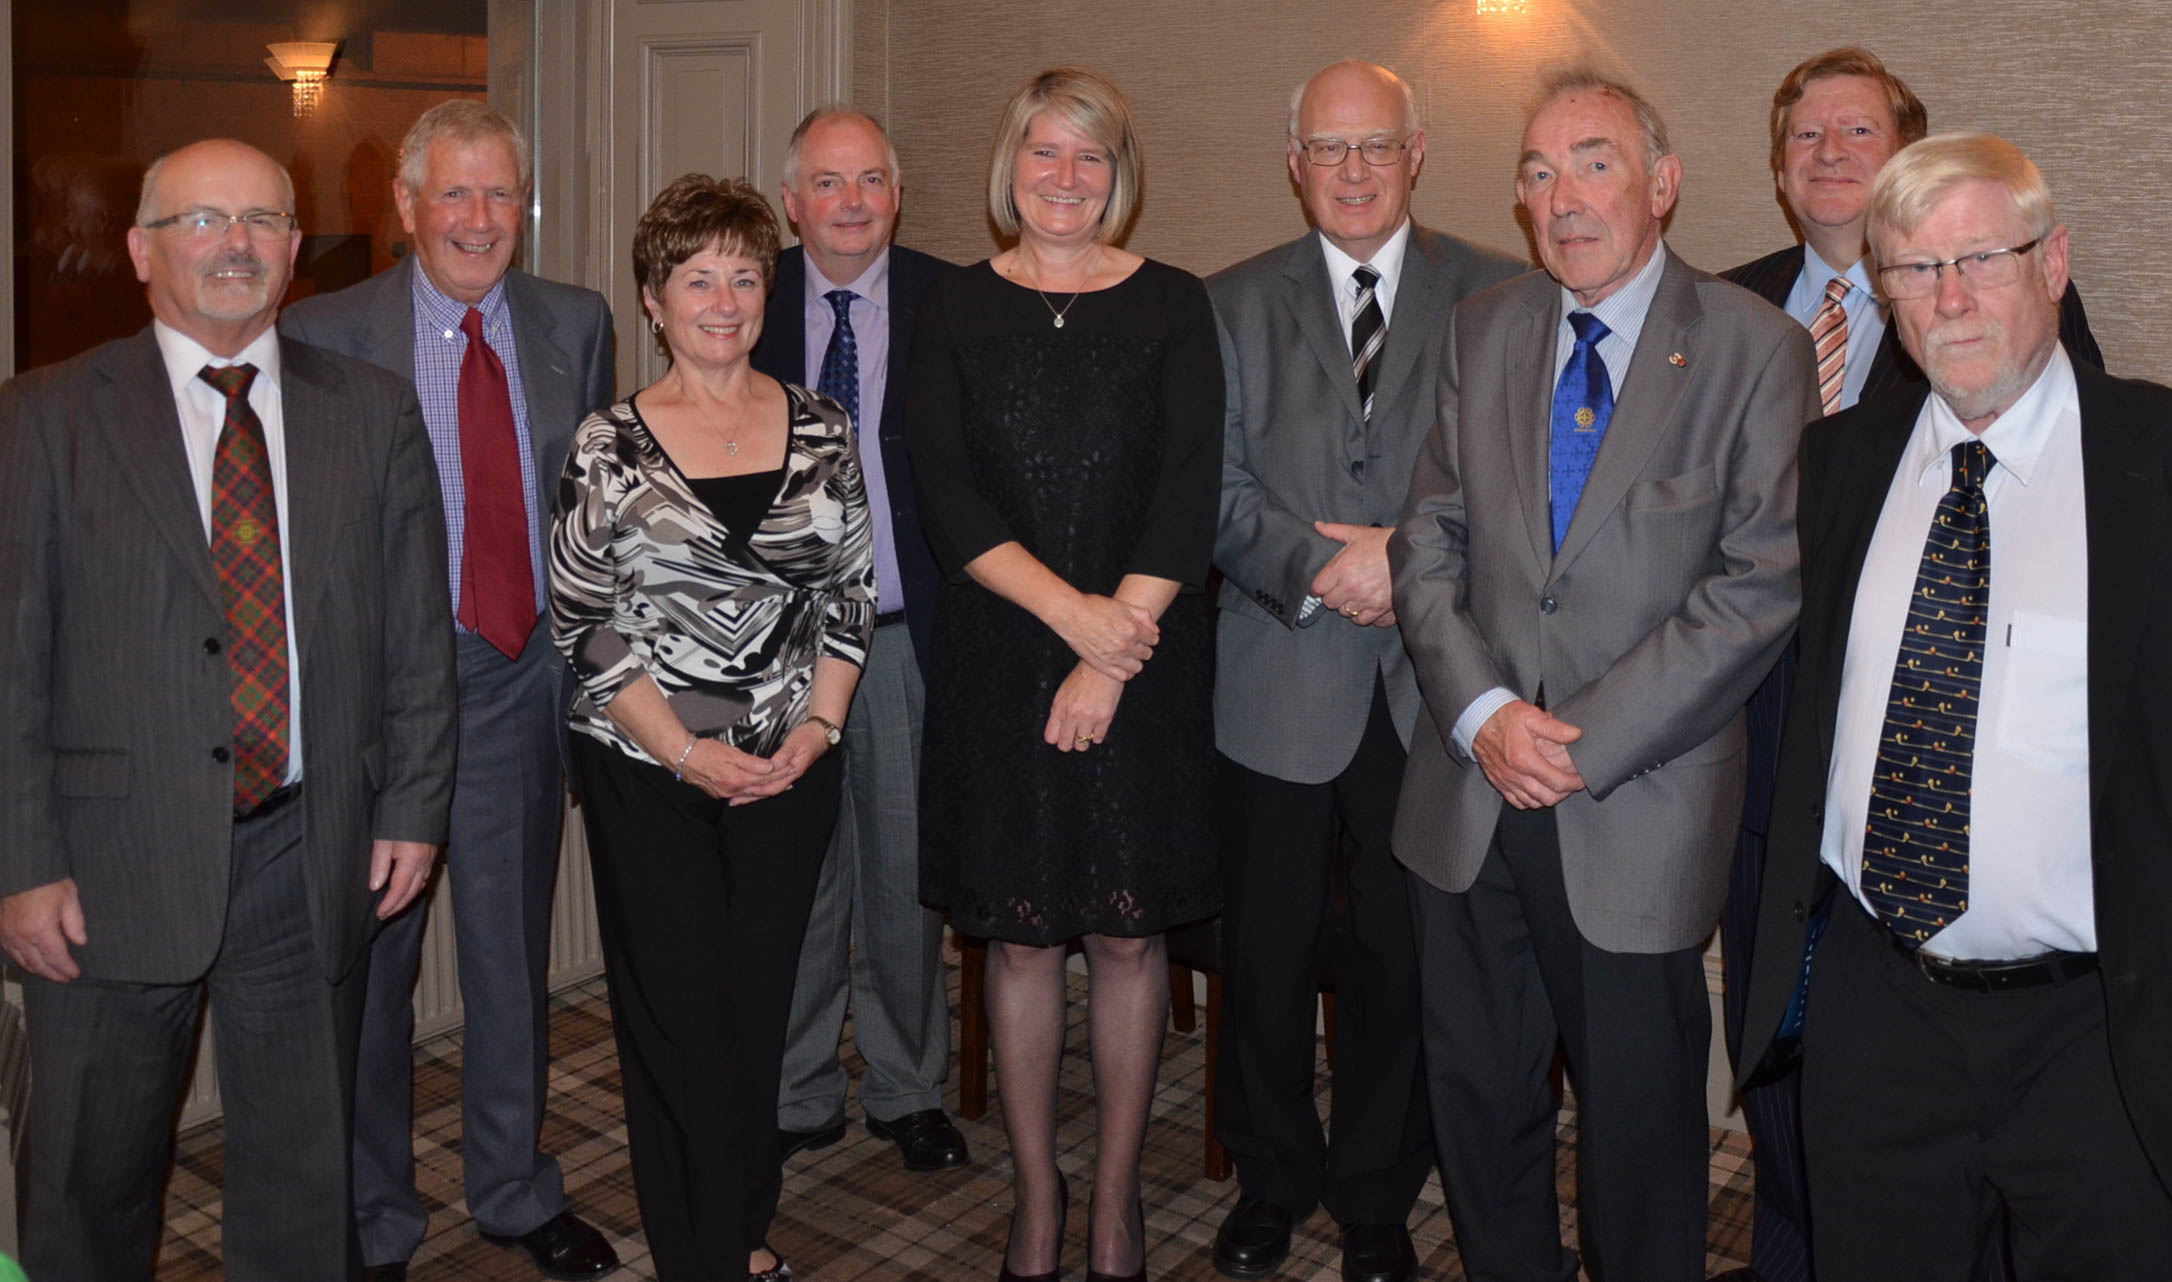 L-R Councillor Archie MacLellan, Douglas and Trish Crighton, Raymond Carlin, Donna Brown, Sheriff Kevin Veal, circle president Joe Dagen, Frank MacGinty and Peter Bleasdale (Glasgow Circle).